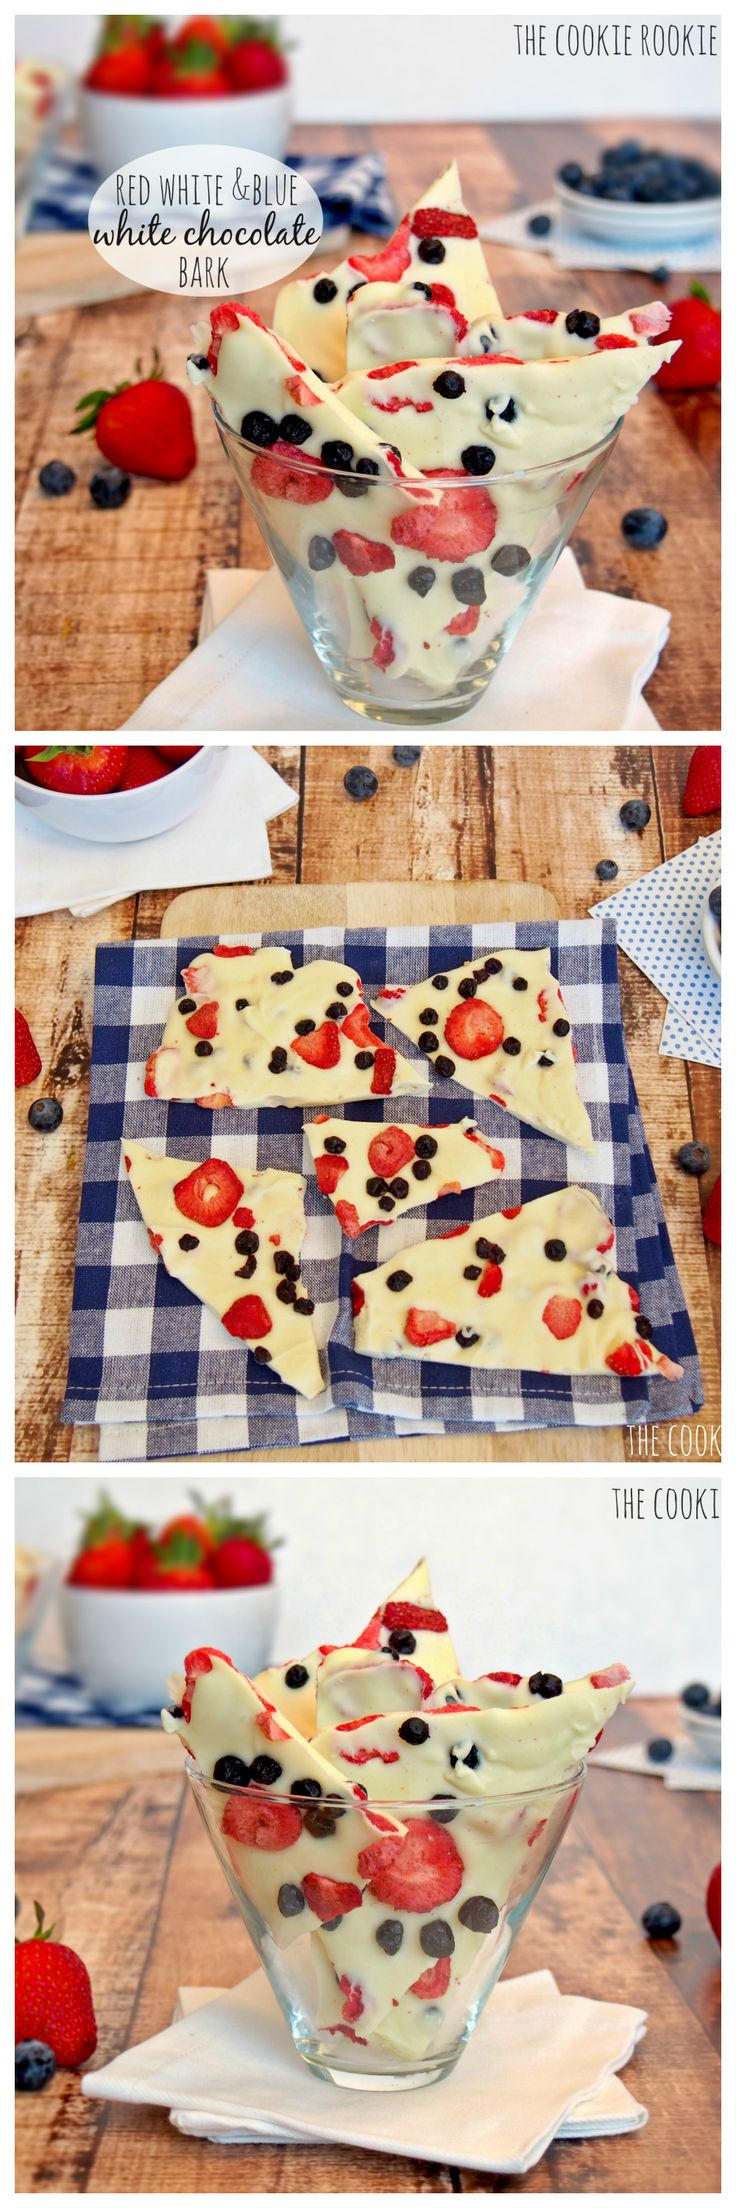 Red White and Blue Bark made with white chocolate and dried fruit #4thofjuly #fourthofjuly: Blue Bark, White Chocolates, Healthy Girls, Dry Fruit, Red White Blue, Chocolates Dry, Dried Fruit, 4Thofjuli Fourthofjuli, Girls Math